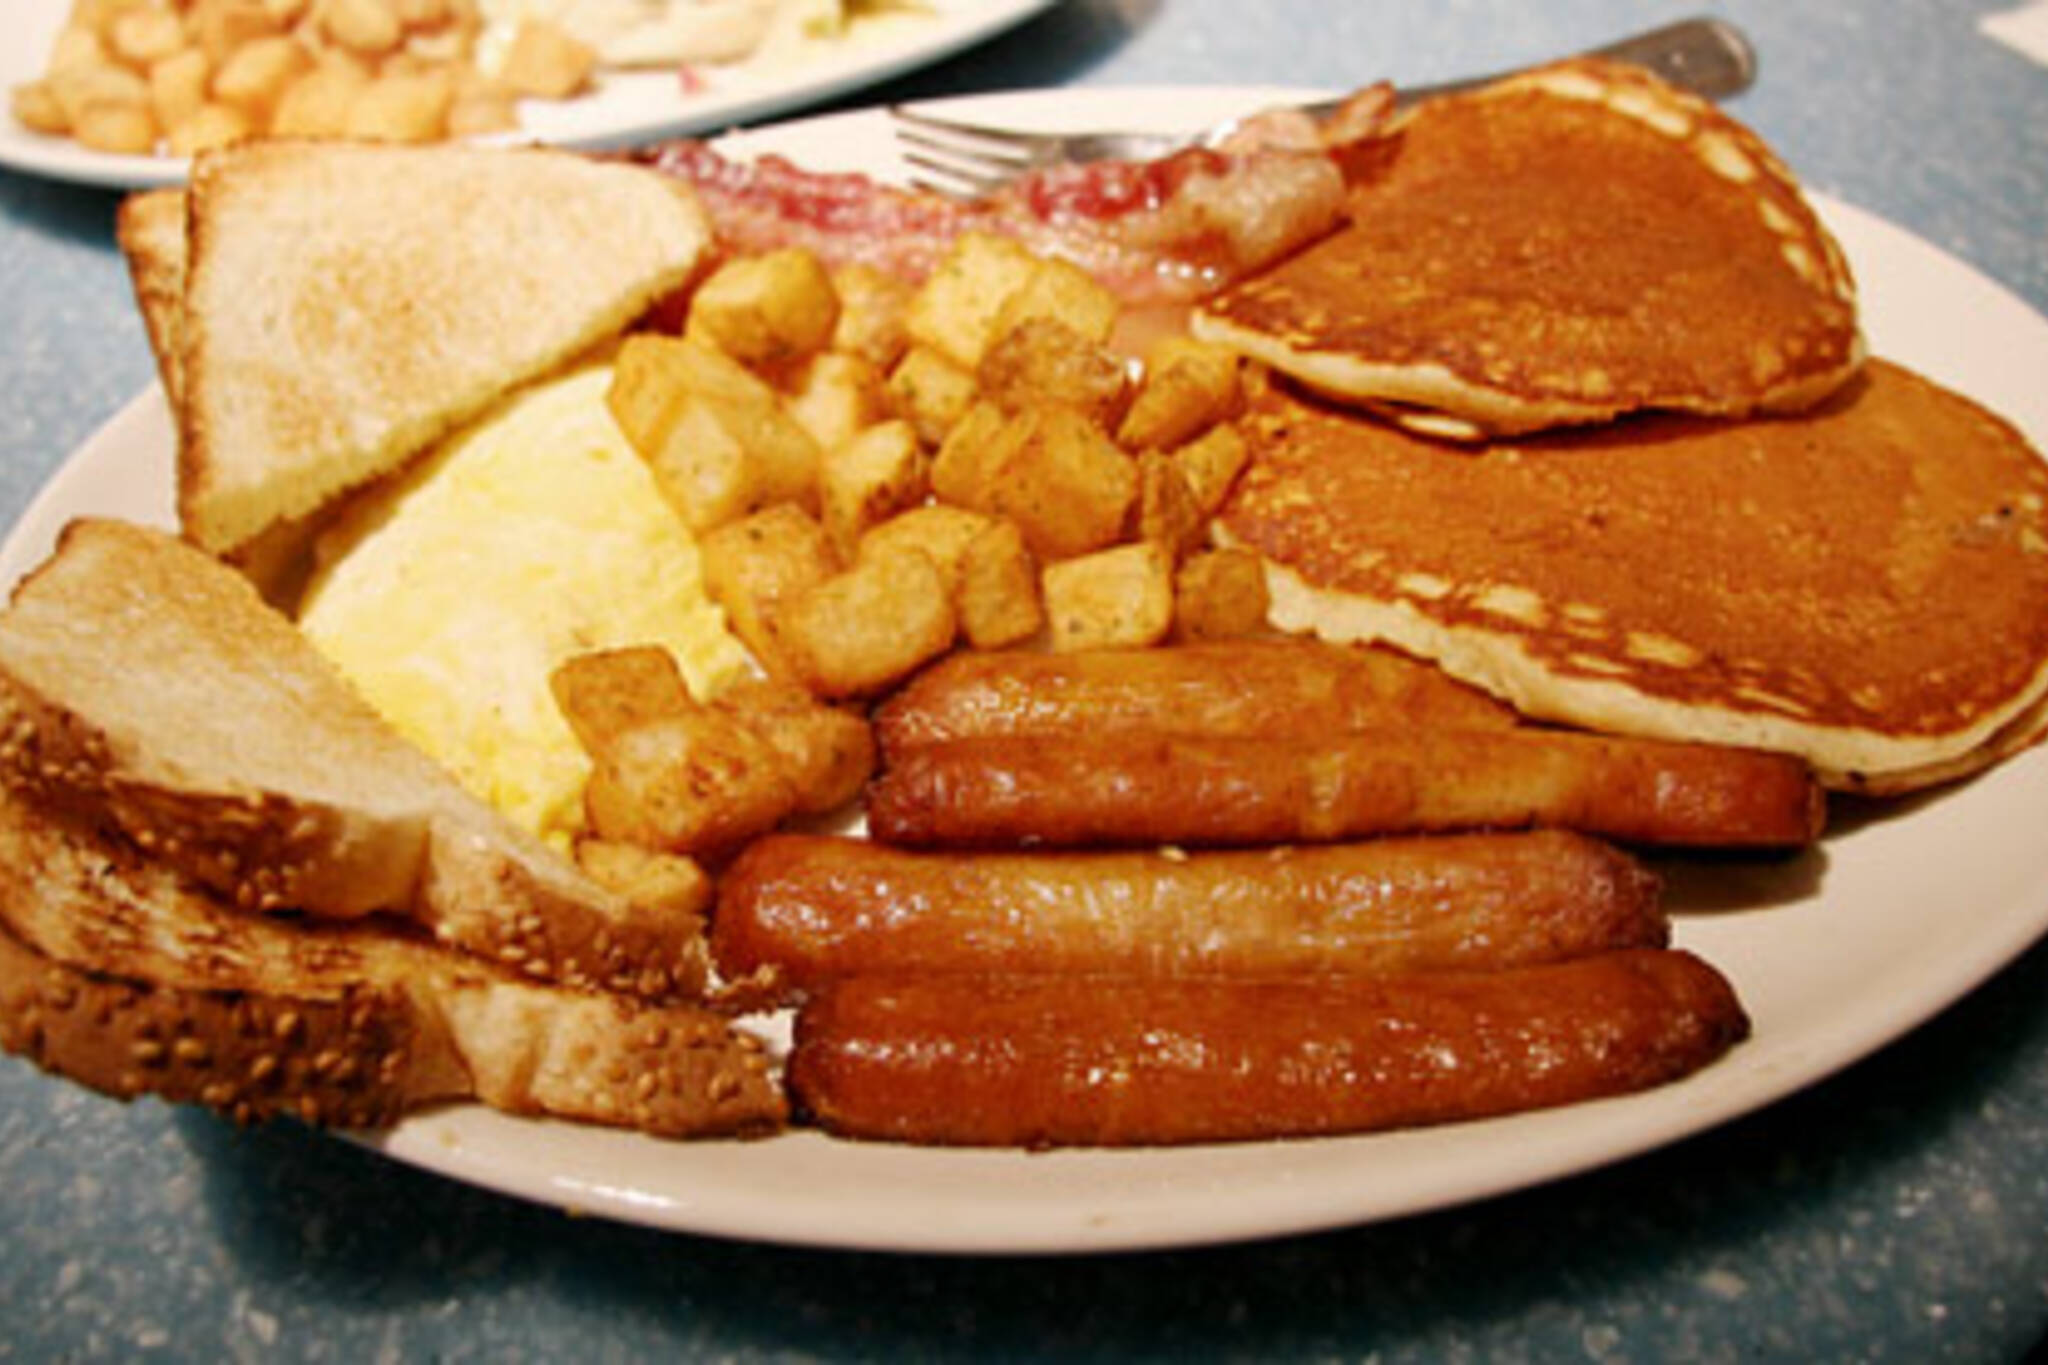 Fran's Big Breakfast